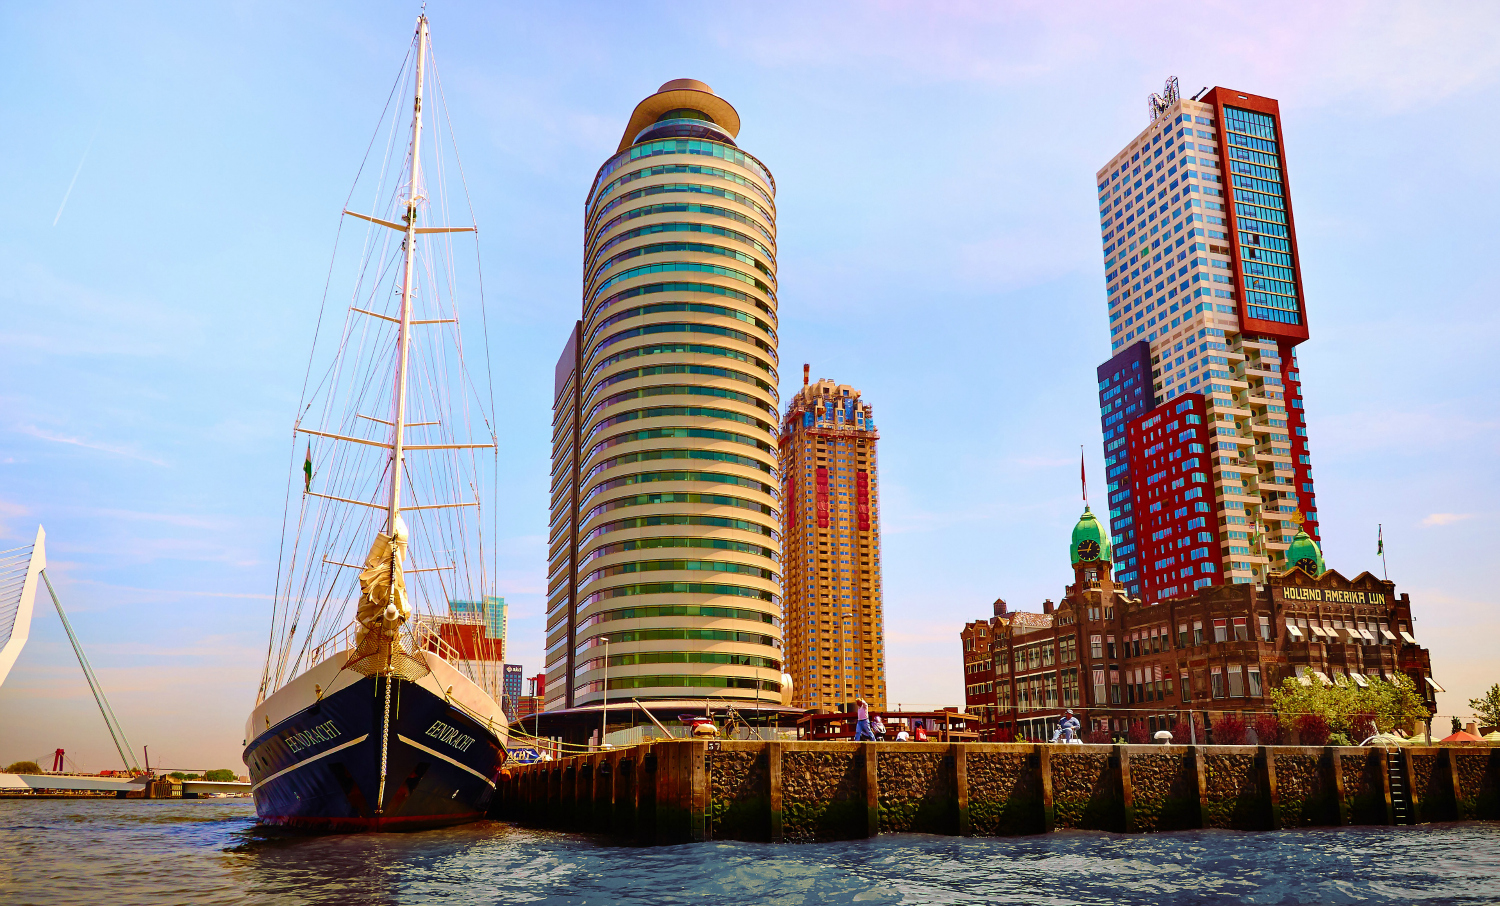 PortXL: a new startup accelerator in the Rotterdam harbour